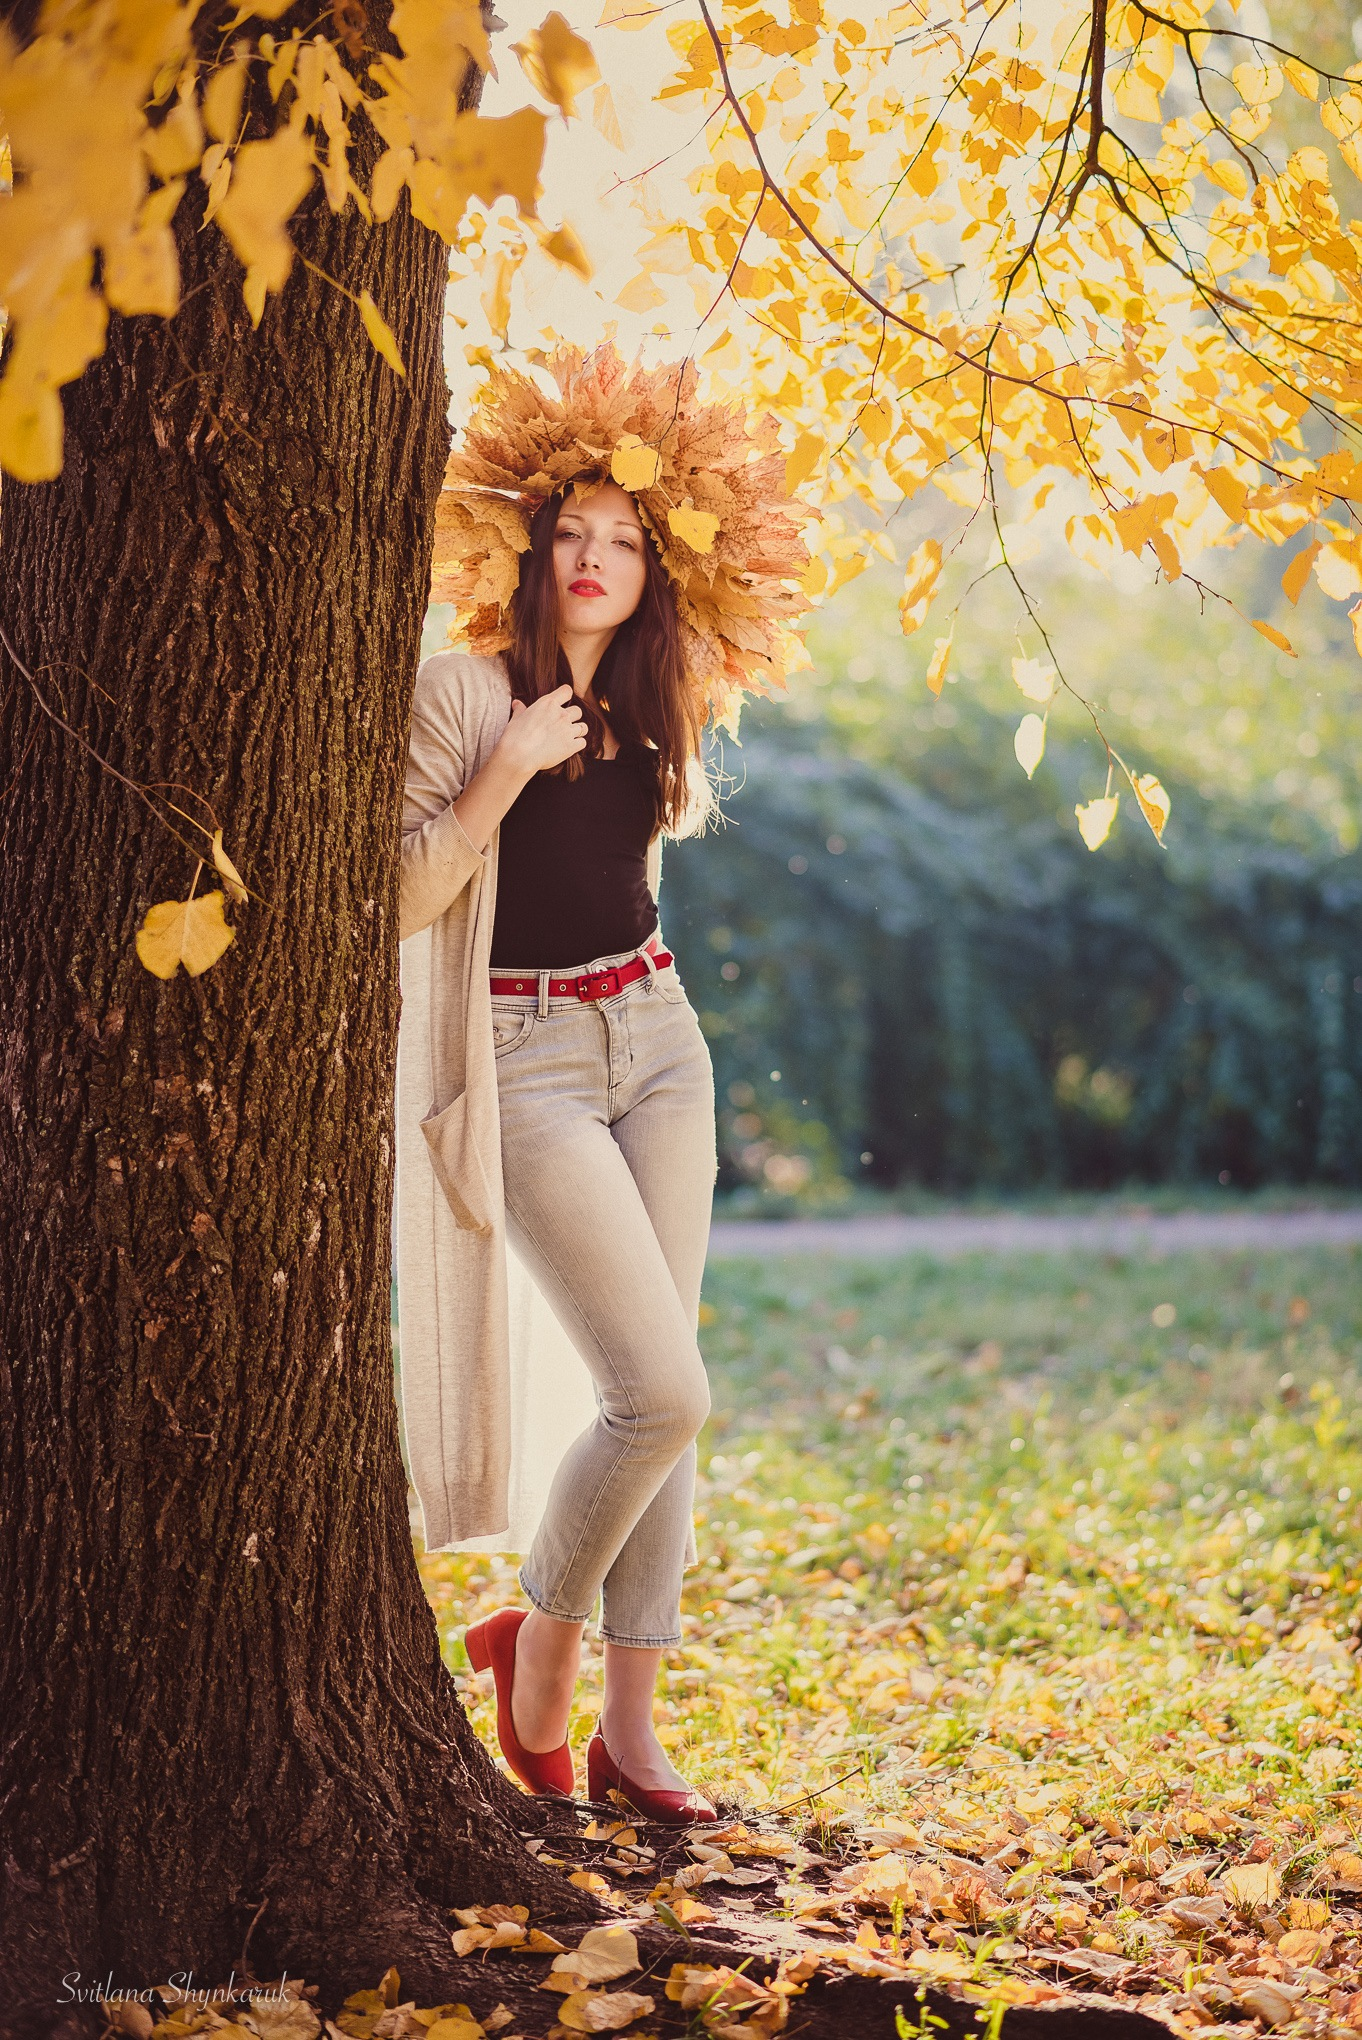 Girl-autumn by Svitlana Shynkaruk